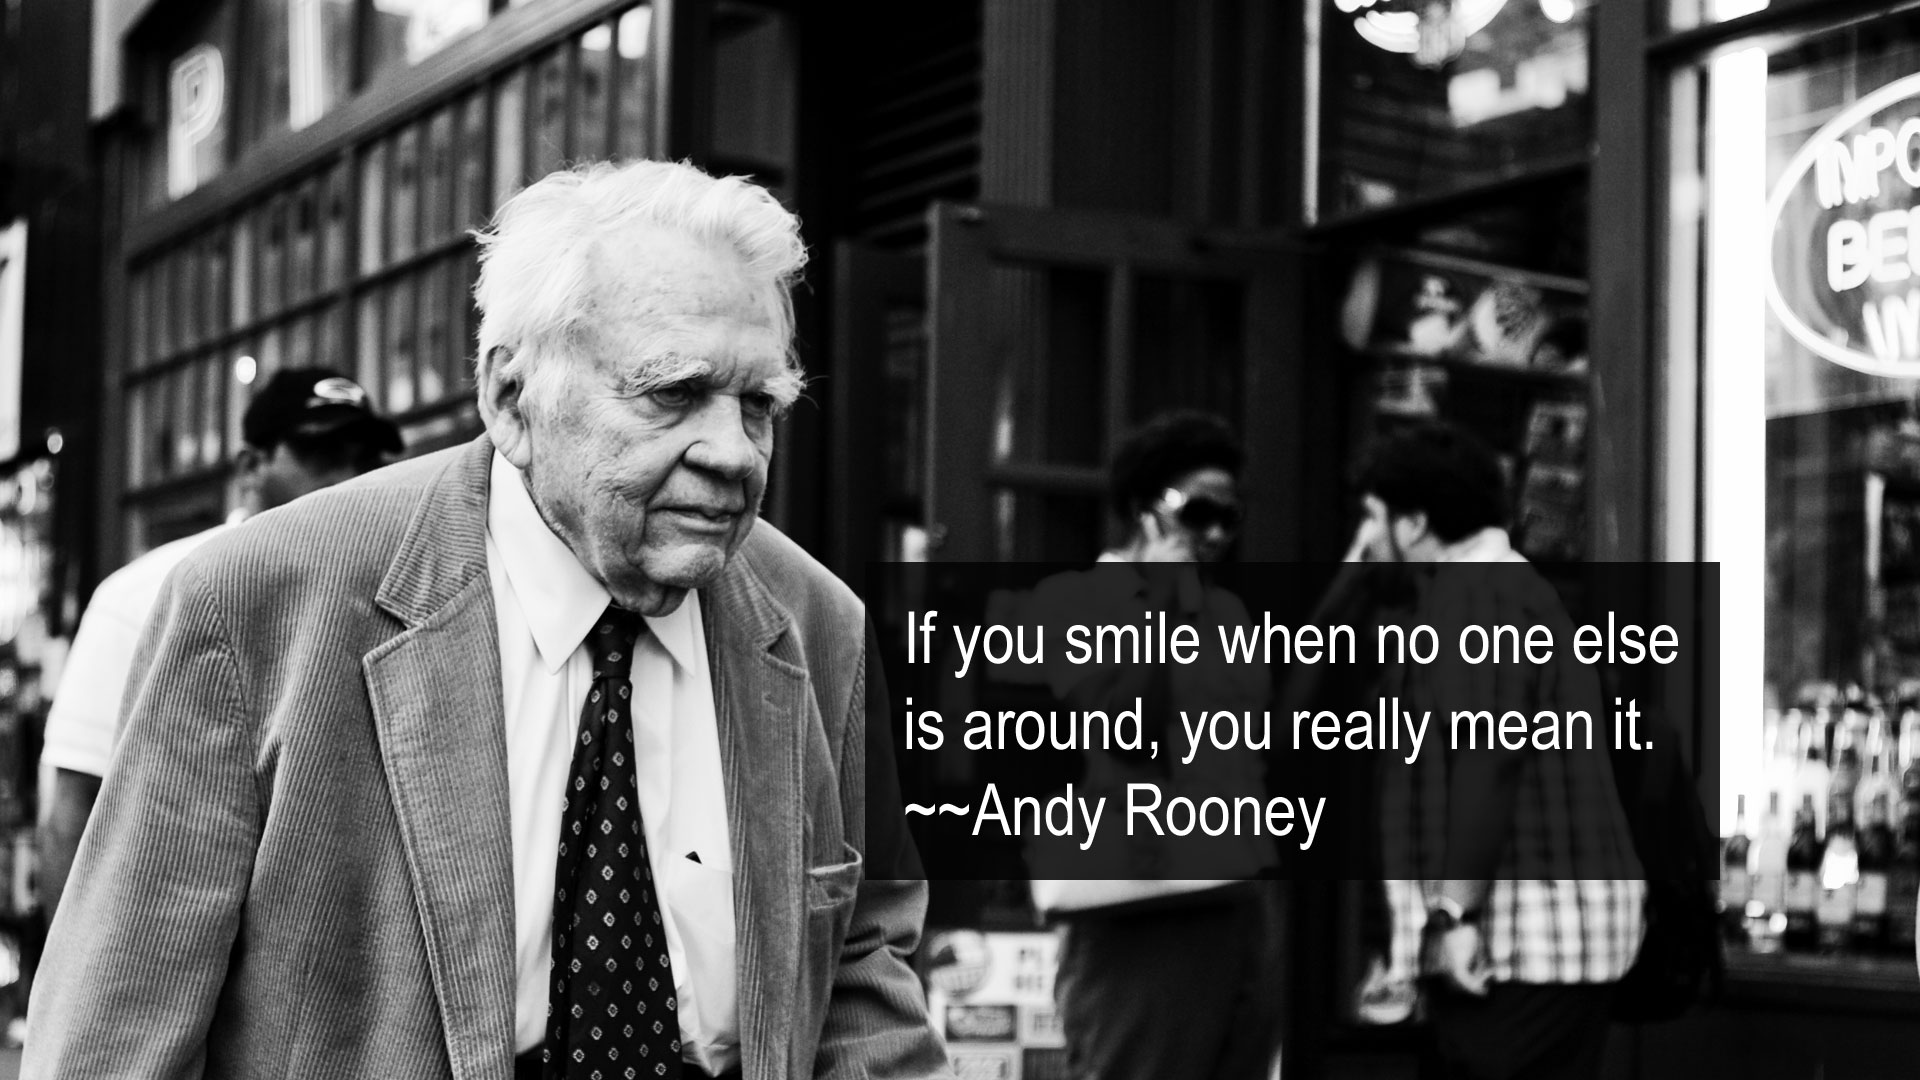 Andy Rooney's quote #2